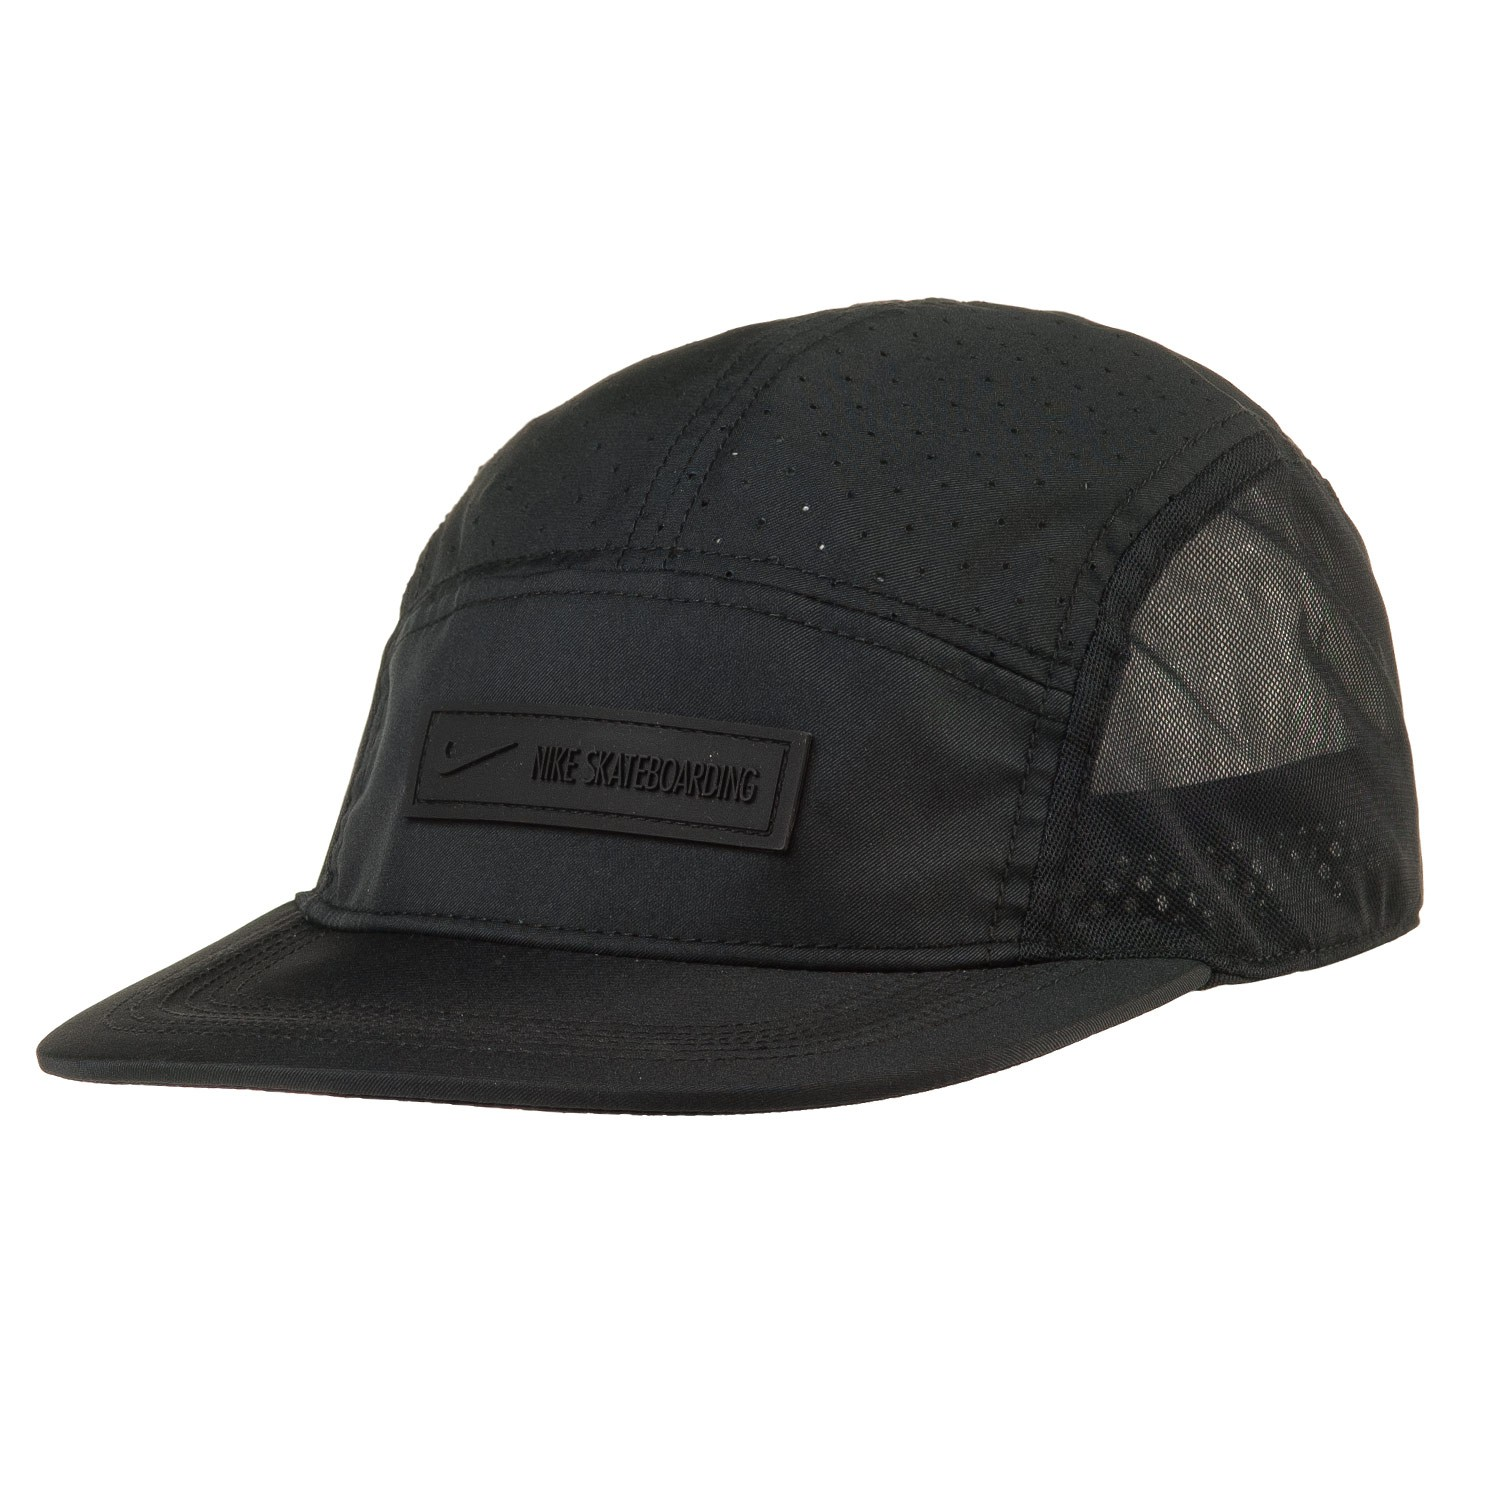 Ugg Sb Ytelse 5 Panel Cap - Svart ZQlyo